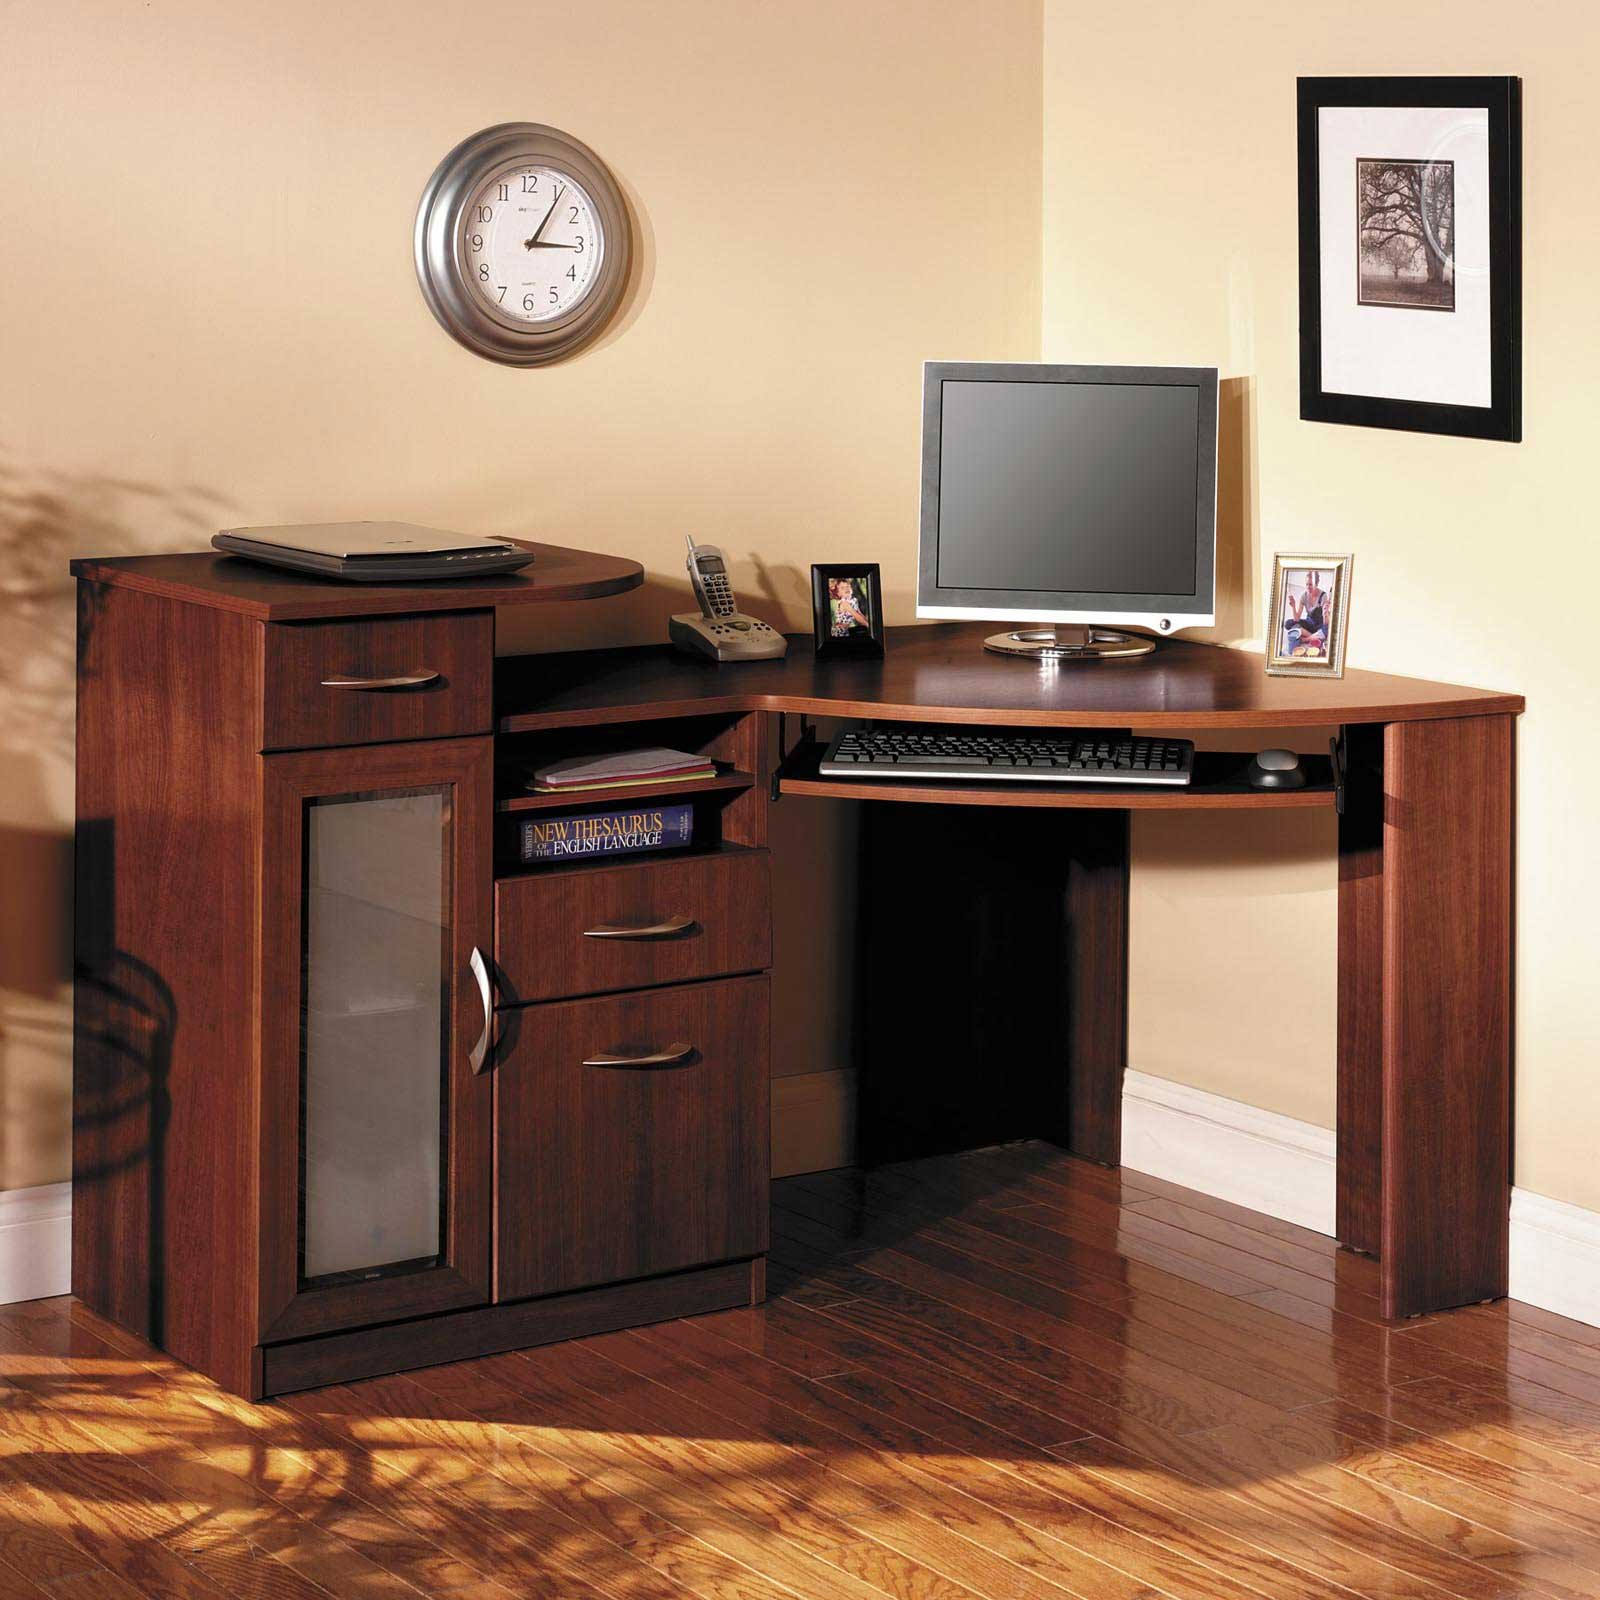 Bush Vantage Cherry Corner Computer Desk for Home